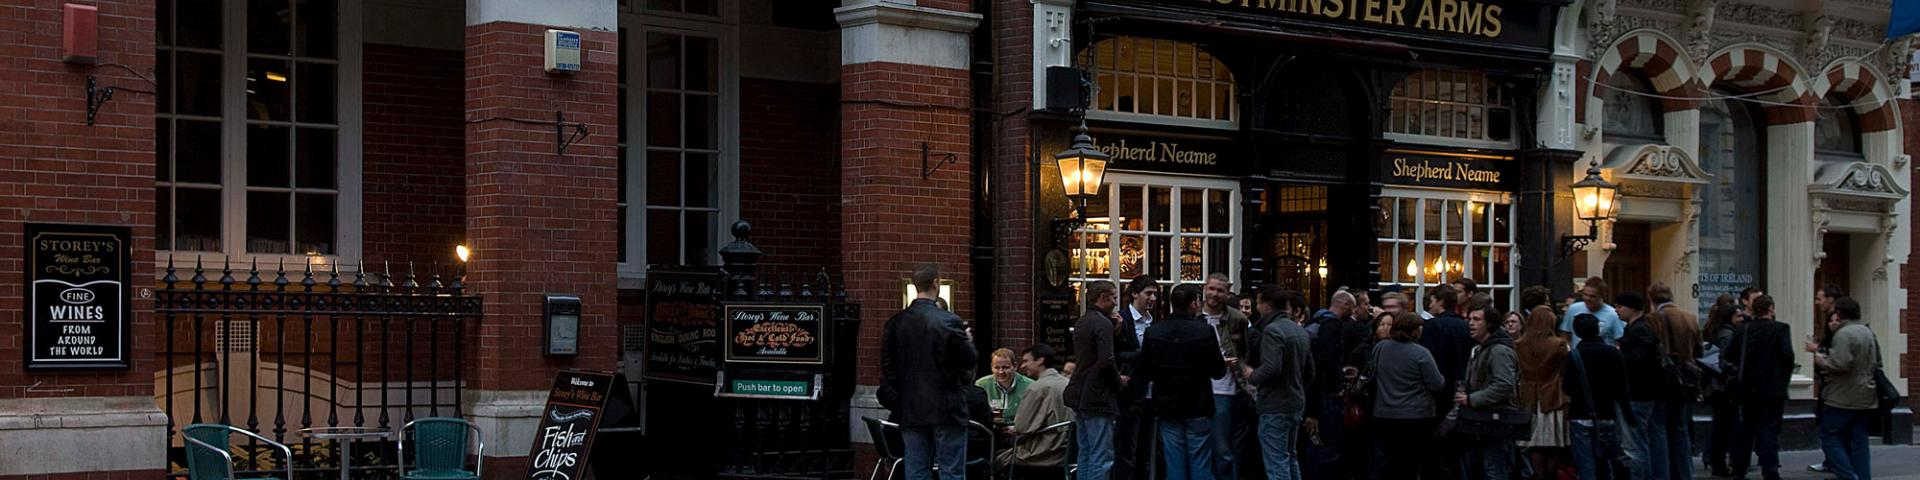 Westminster Arms, London